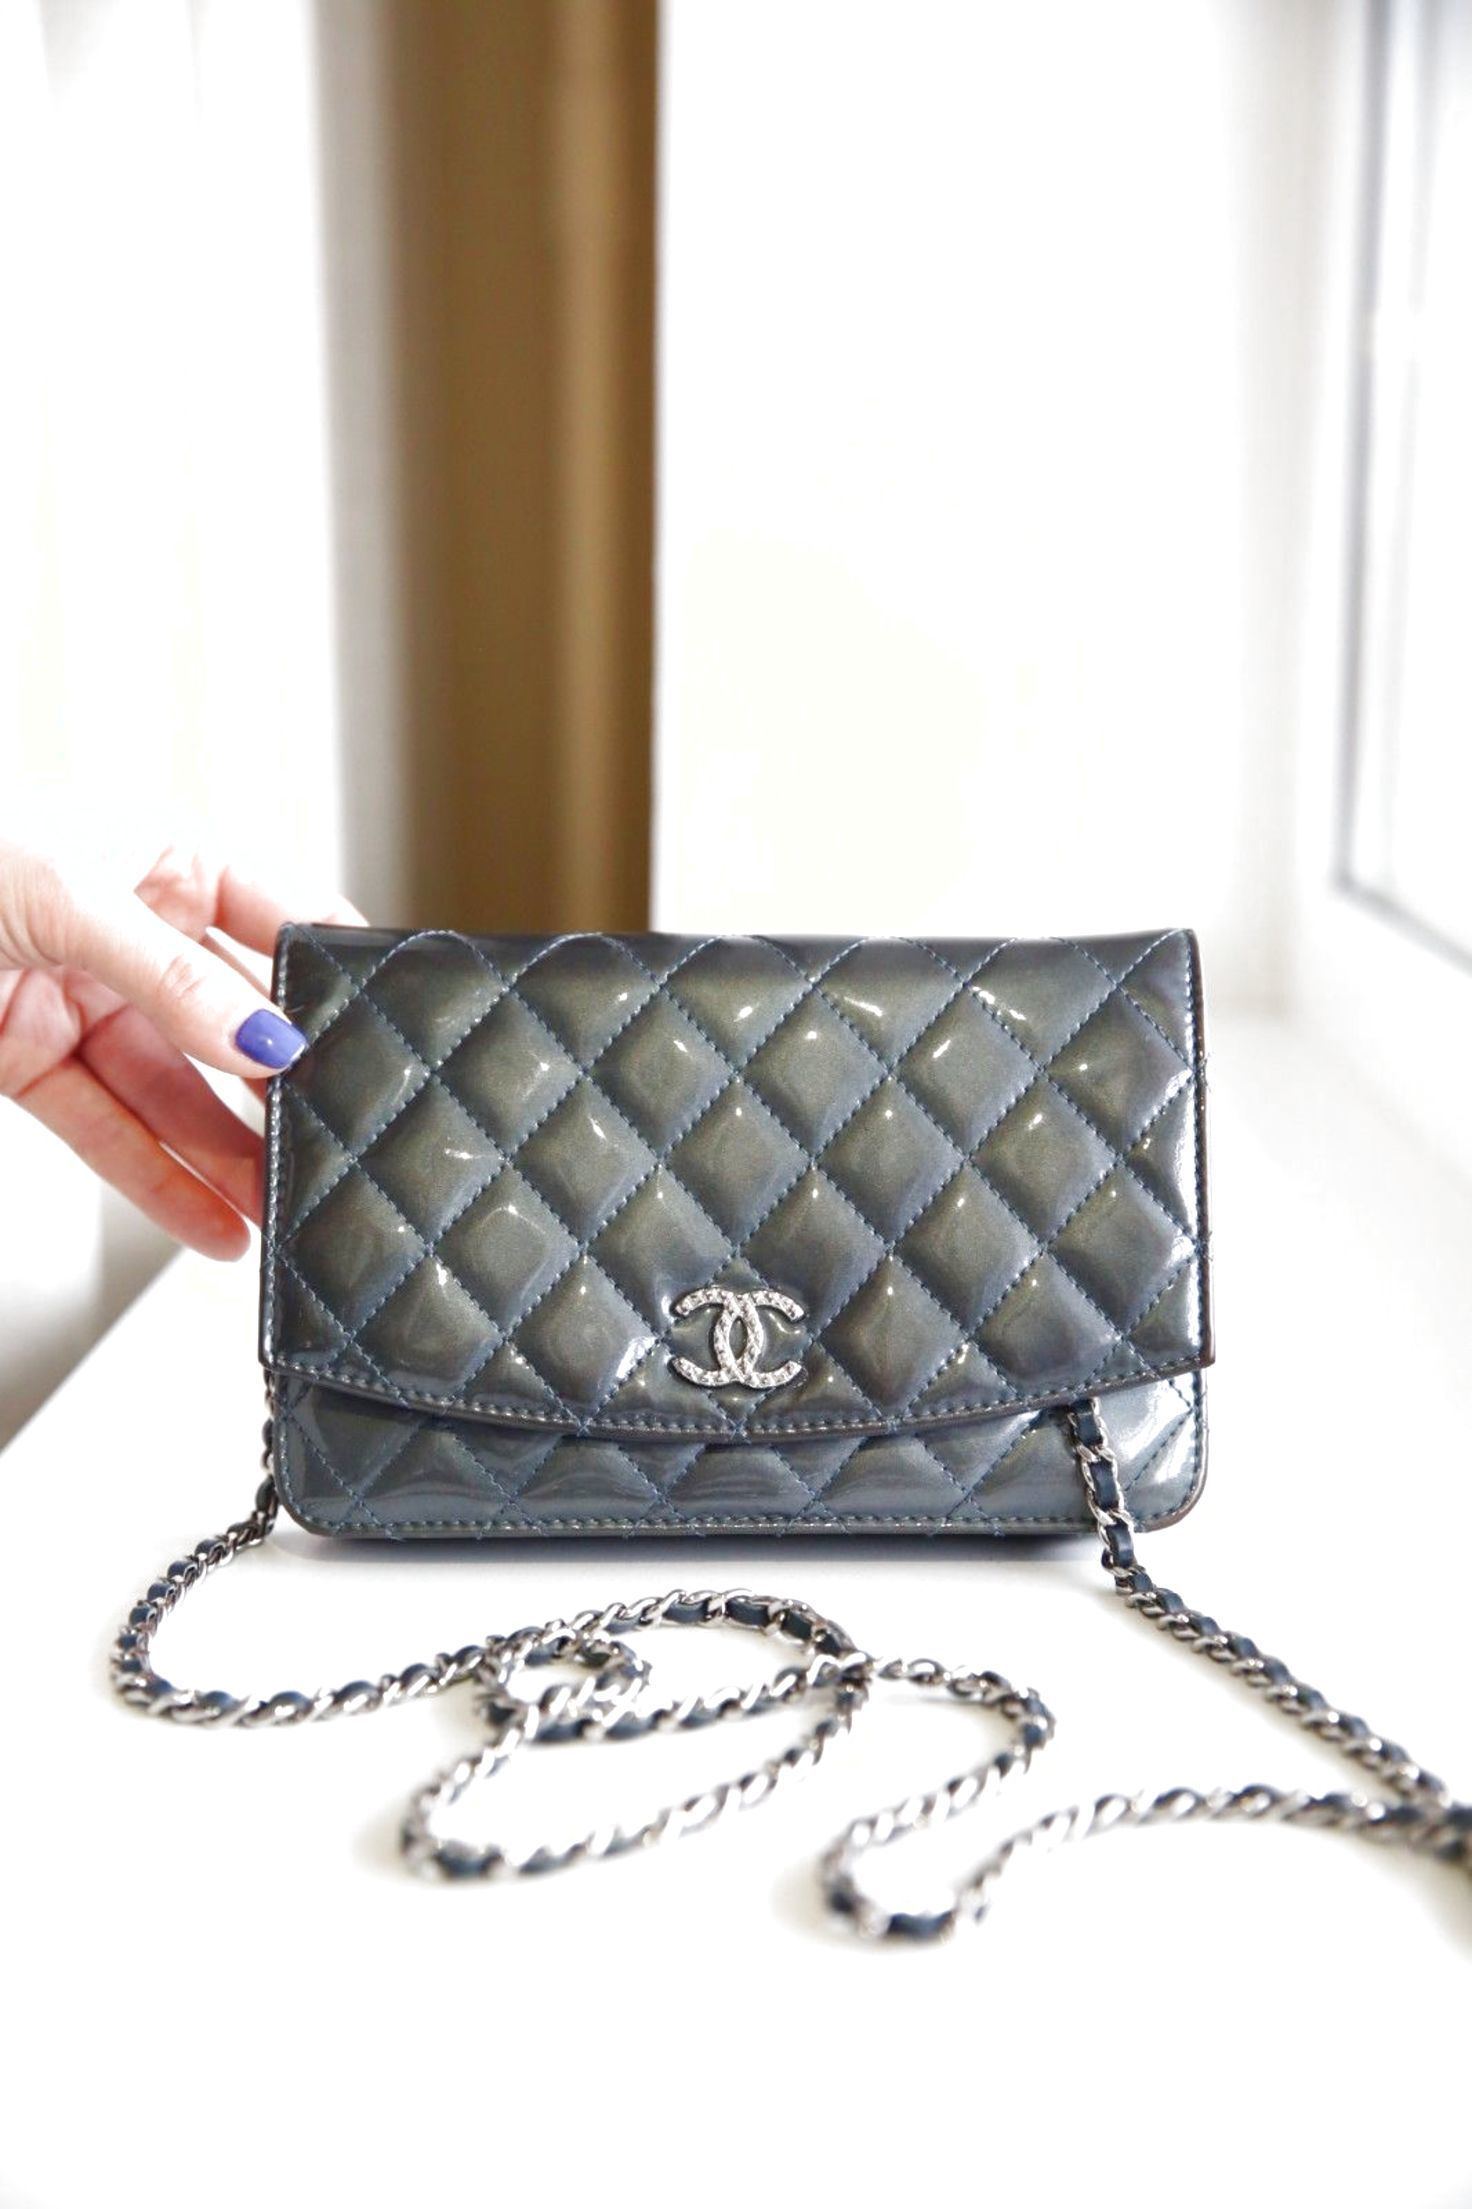 504ce4851c41 Authentic Chanel Blue Caviar WOC Wallet On a Chain bag $1399.0 | Chanel  Handbags | Pinterest | Blues, Bags and Chanel